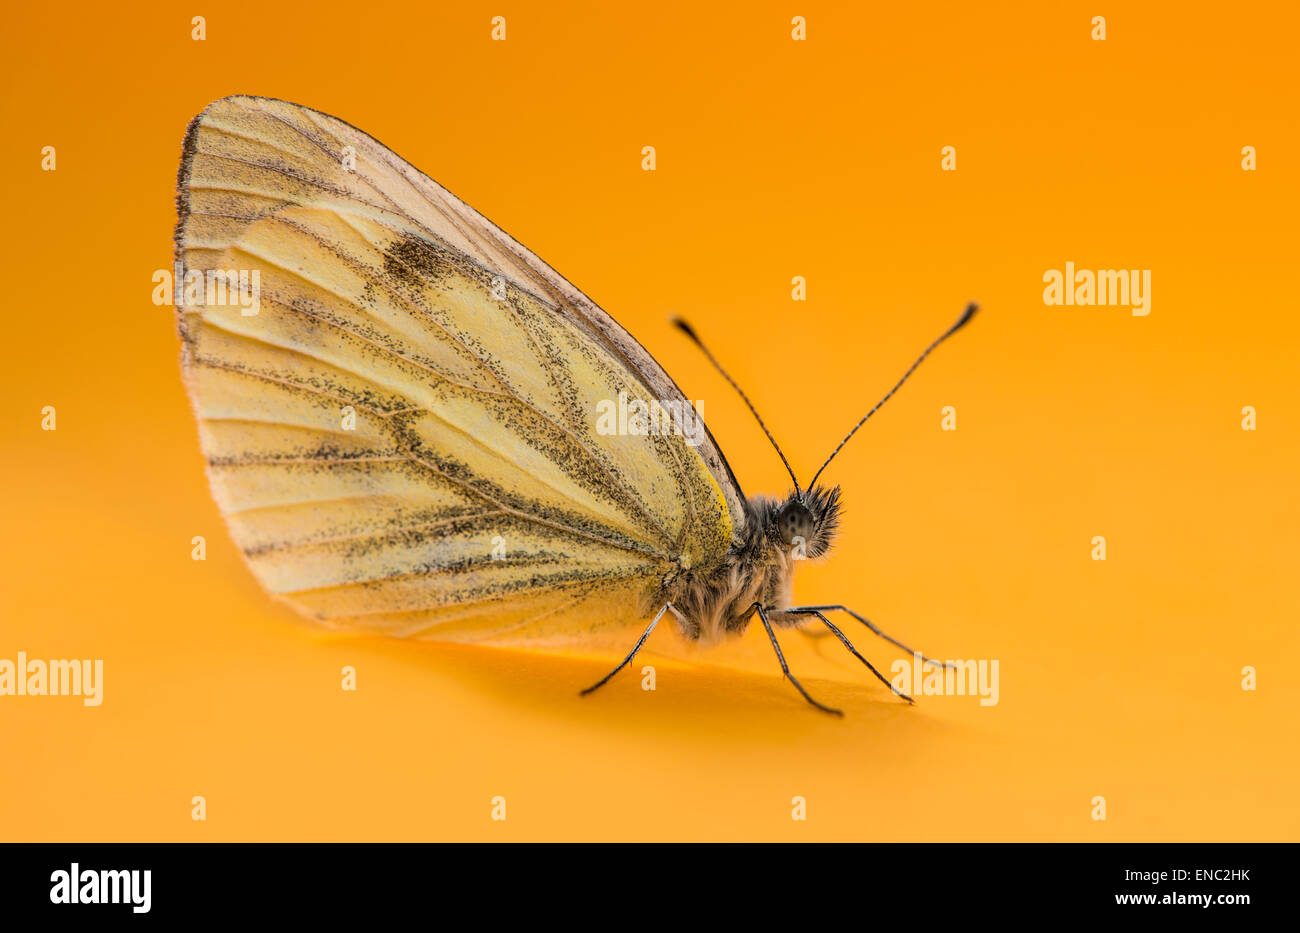 Green-veined white butterfly, Pieris napi, in front of an orange background - Stock Image